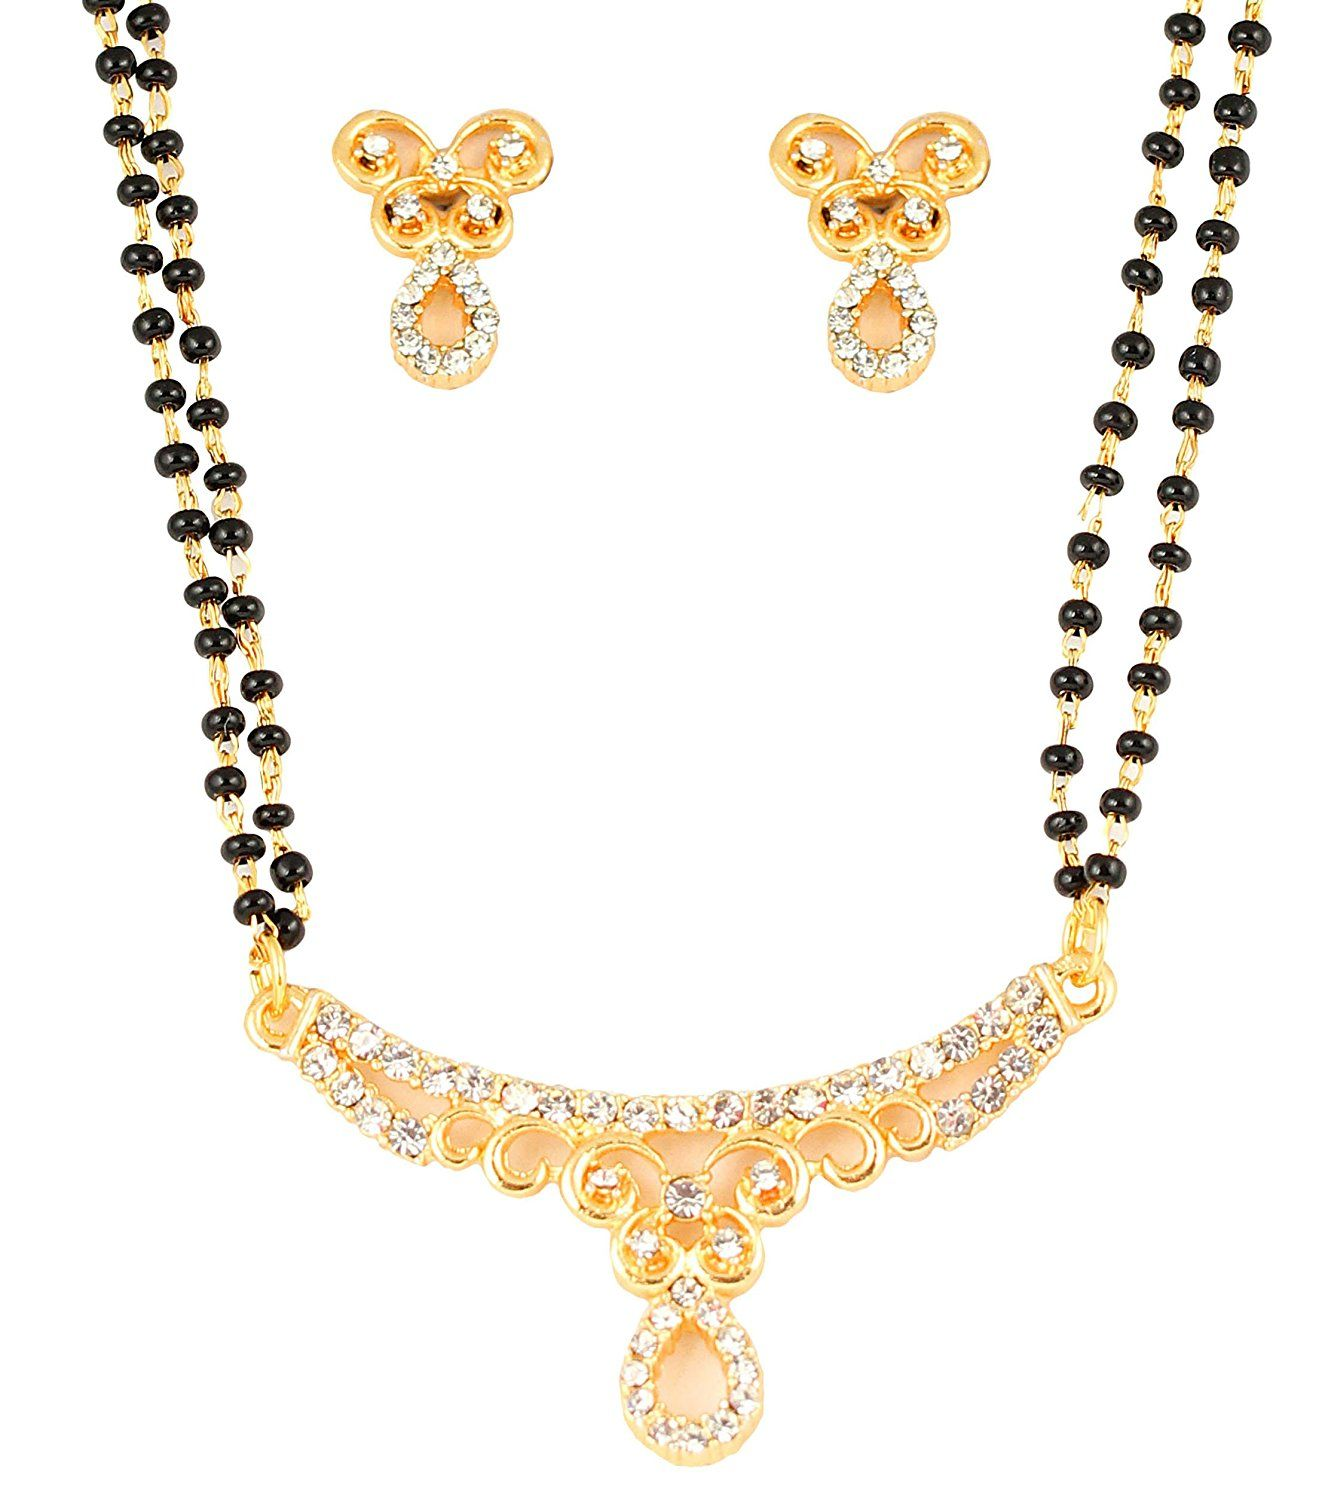 Touchstone gold tone Indian bollywood ethnic white rhinestones pretty mangalsutra necklace set jewelry for women JG08a5LLZV